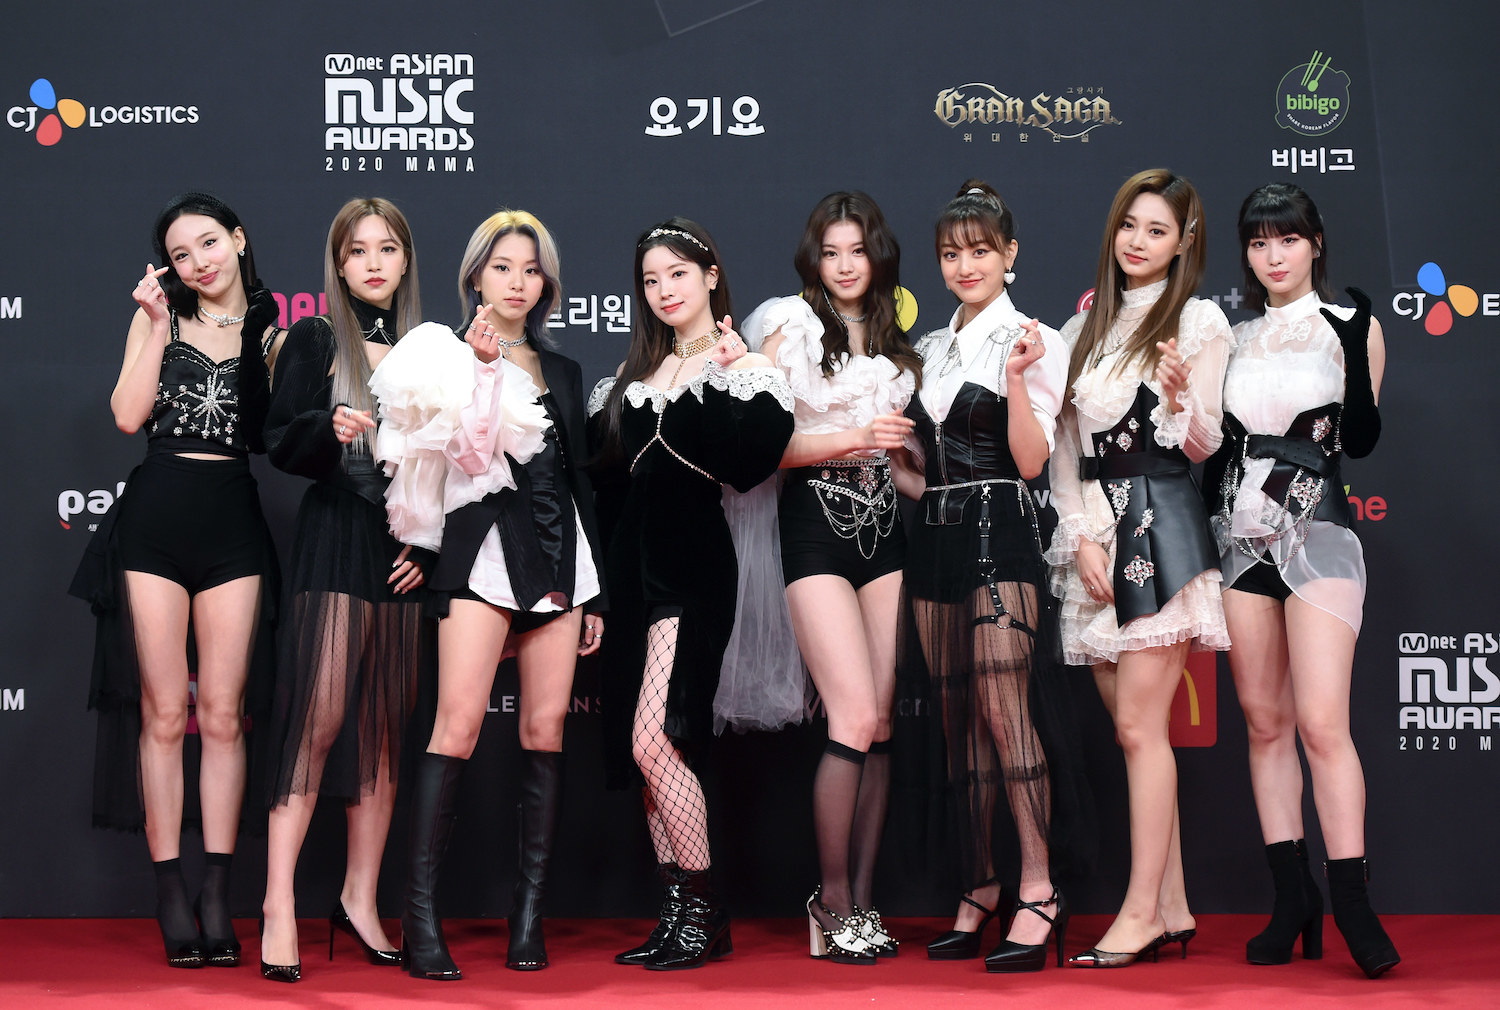 TWICE attends the 2020 Mnet Asian Music Awards